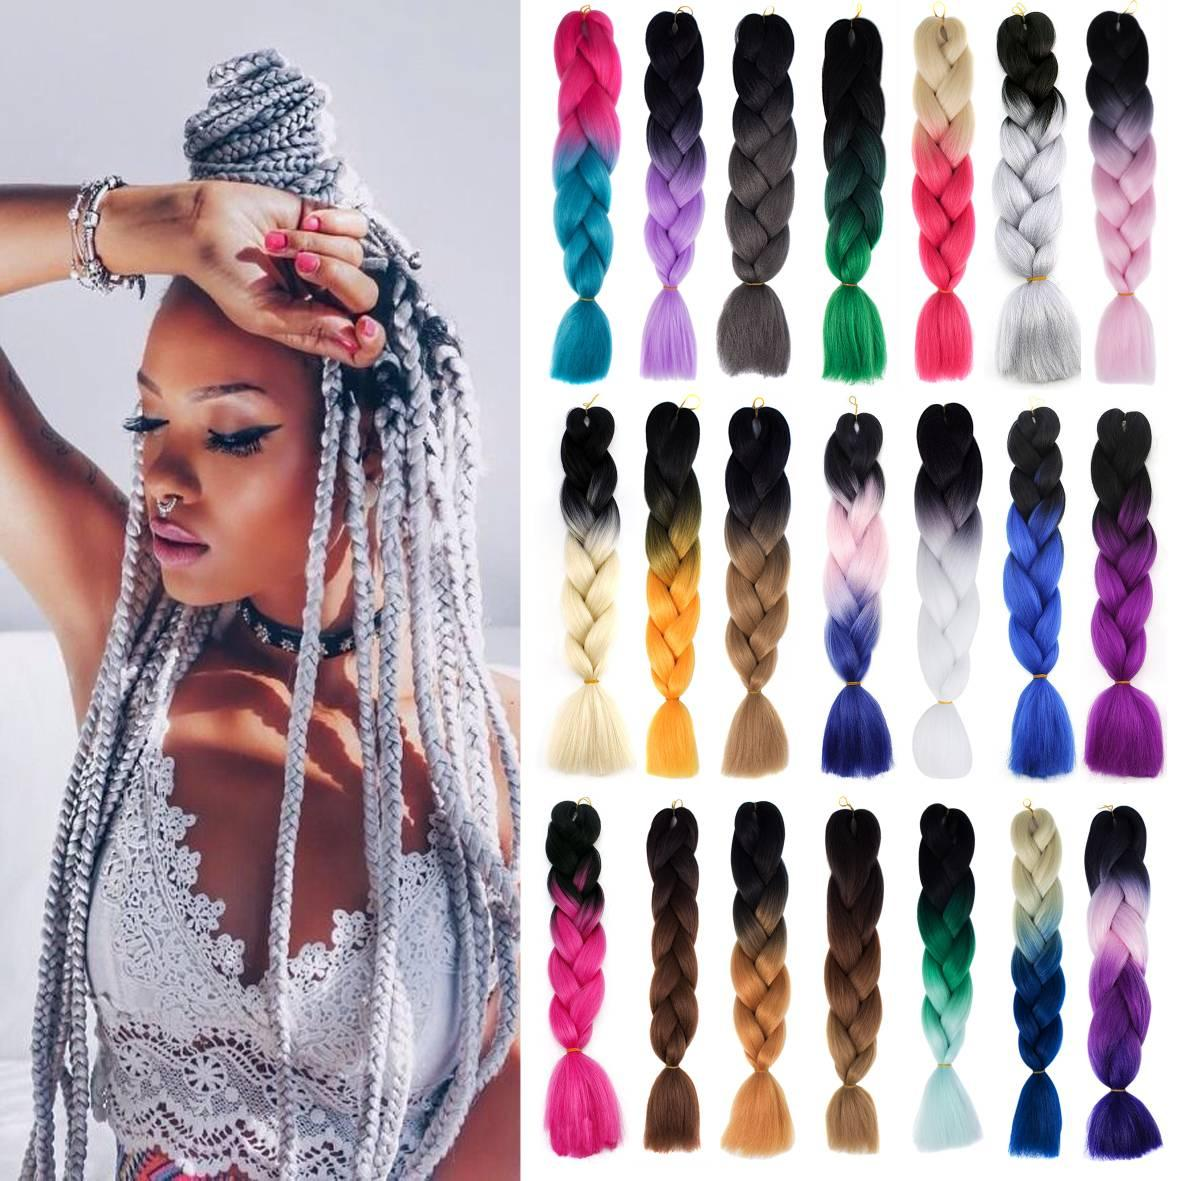 2020 24Inch 3Tone Colors African Ombre Hair Attachment For